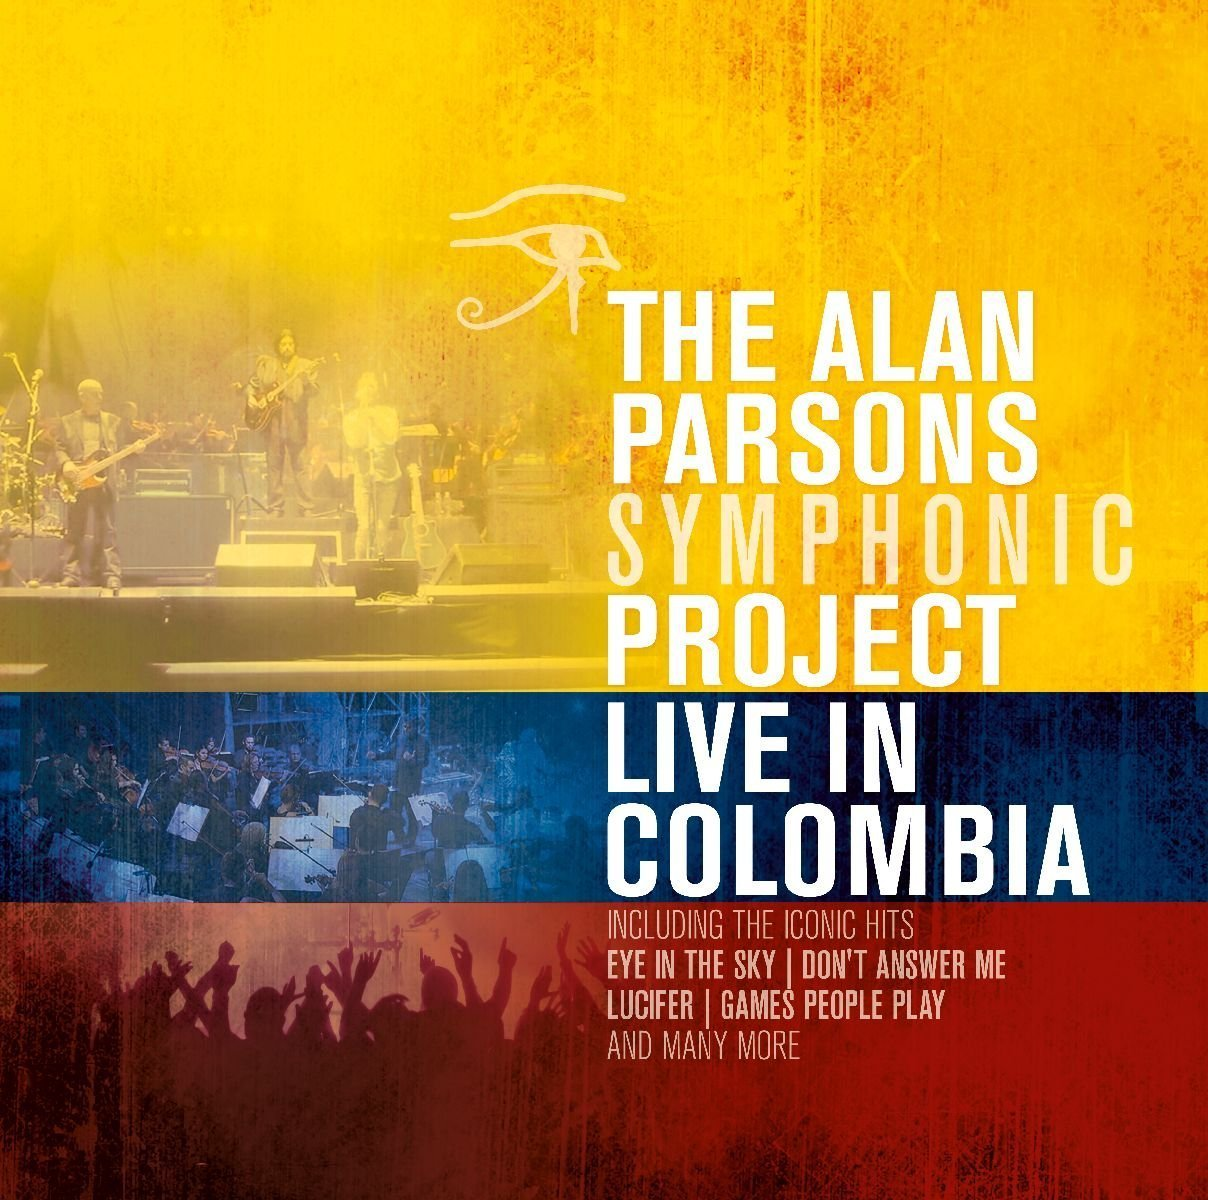 The Alan Parsons Symphonic Project The Alan Parsons Symphonic Project. Live In Colombia (3LP) professional waterproof dive flash light xhp70 led diving flashlight tactical torch with 4 18650 battery charger for camping